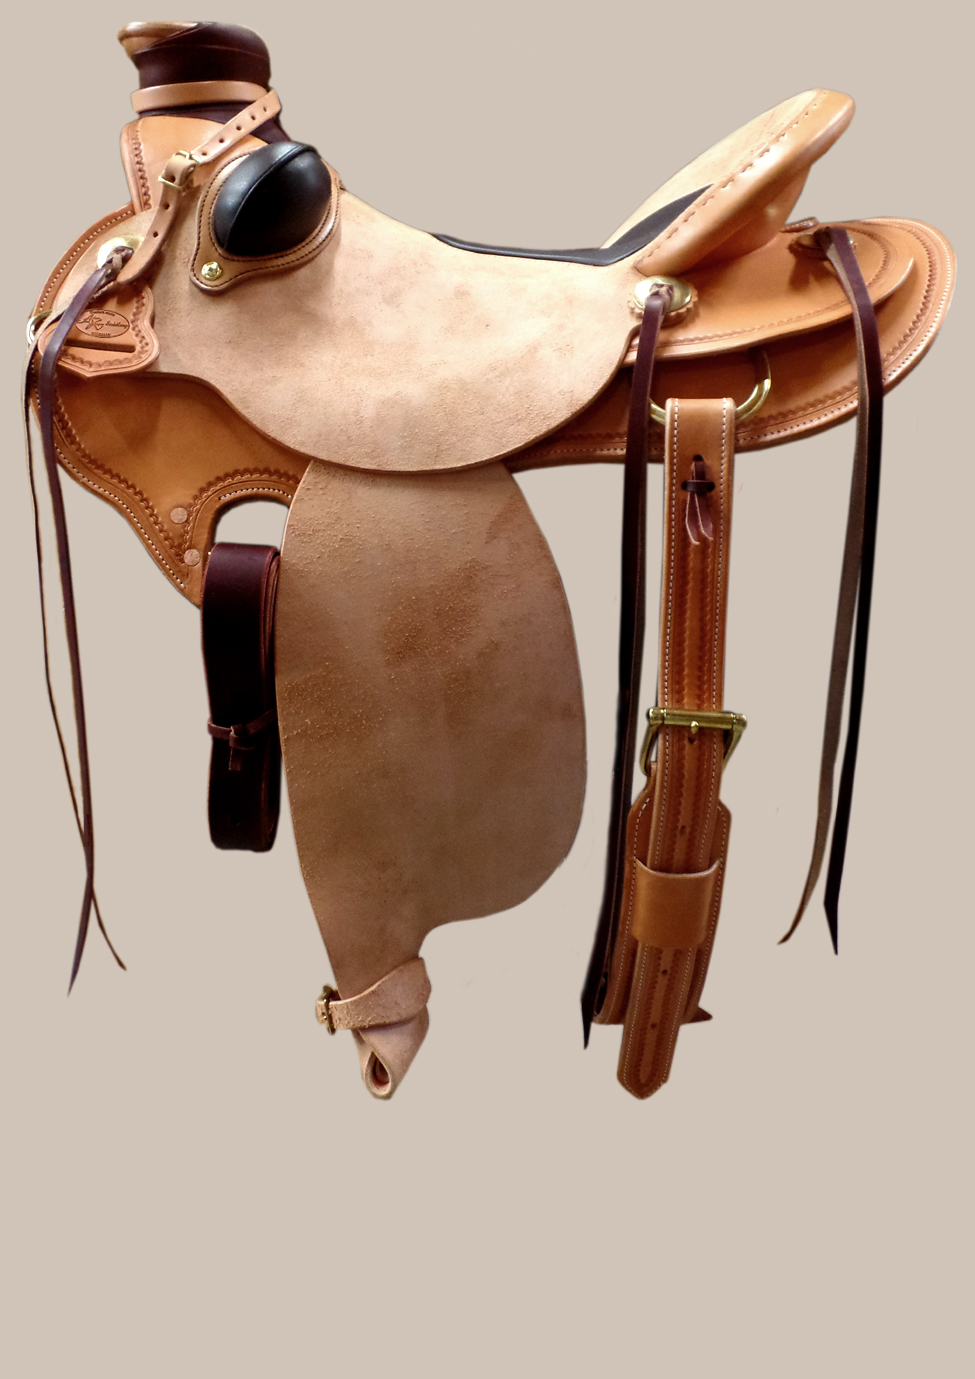 Buckaroo Oldtimer mit Wade Fork und Inlay Seat, rough out